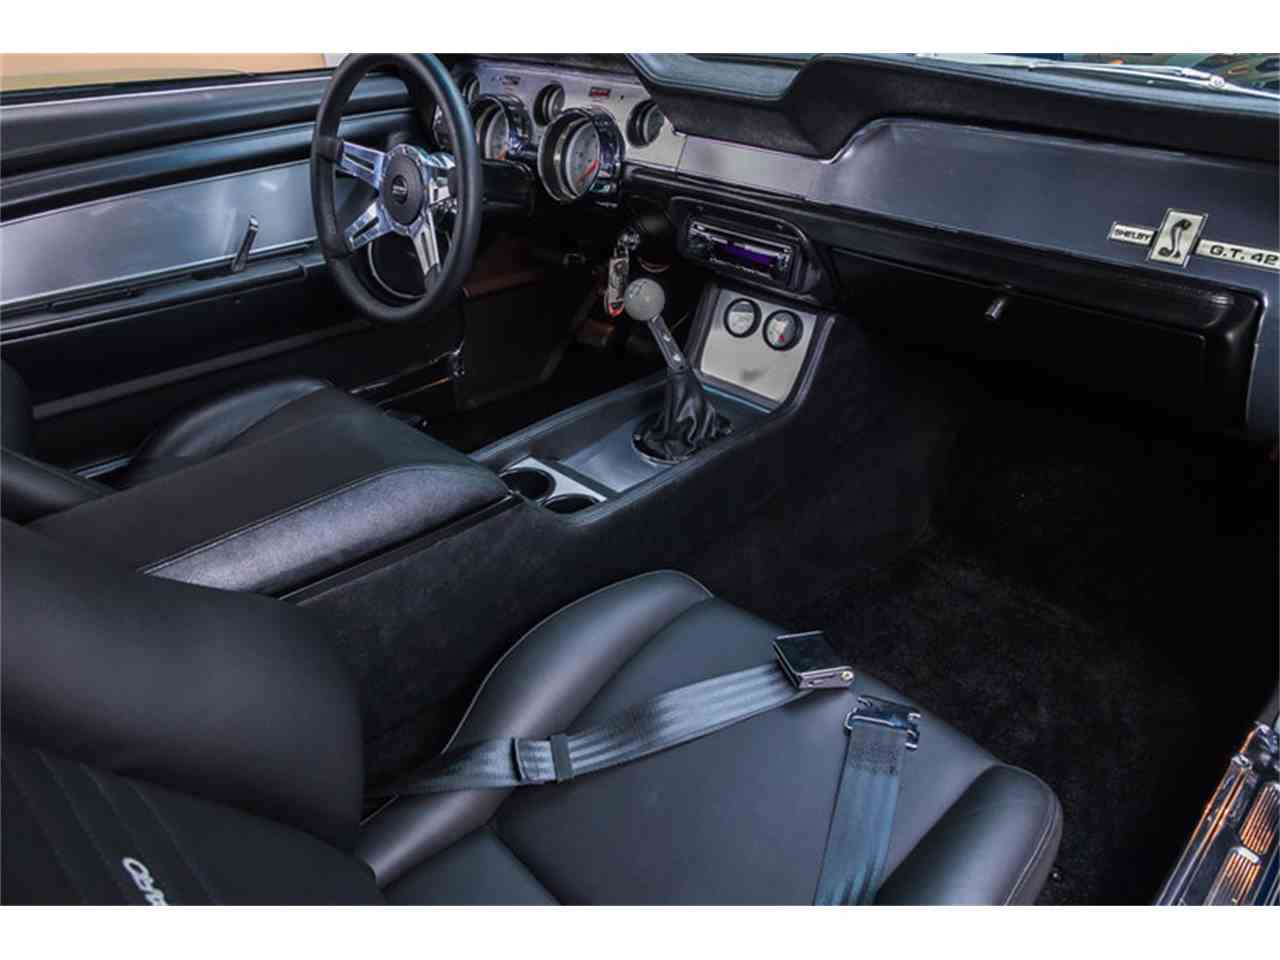 1967 ford mustang fastback pro touring for sale classiccars large picture of 67 mustang fastback pro touring lto2 sciox Choice Image